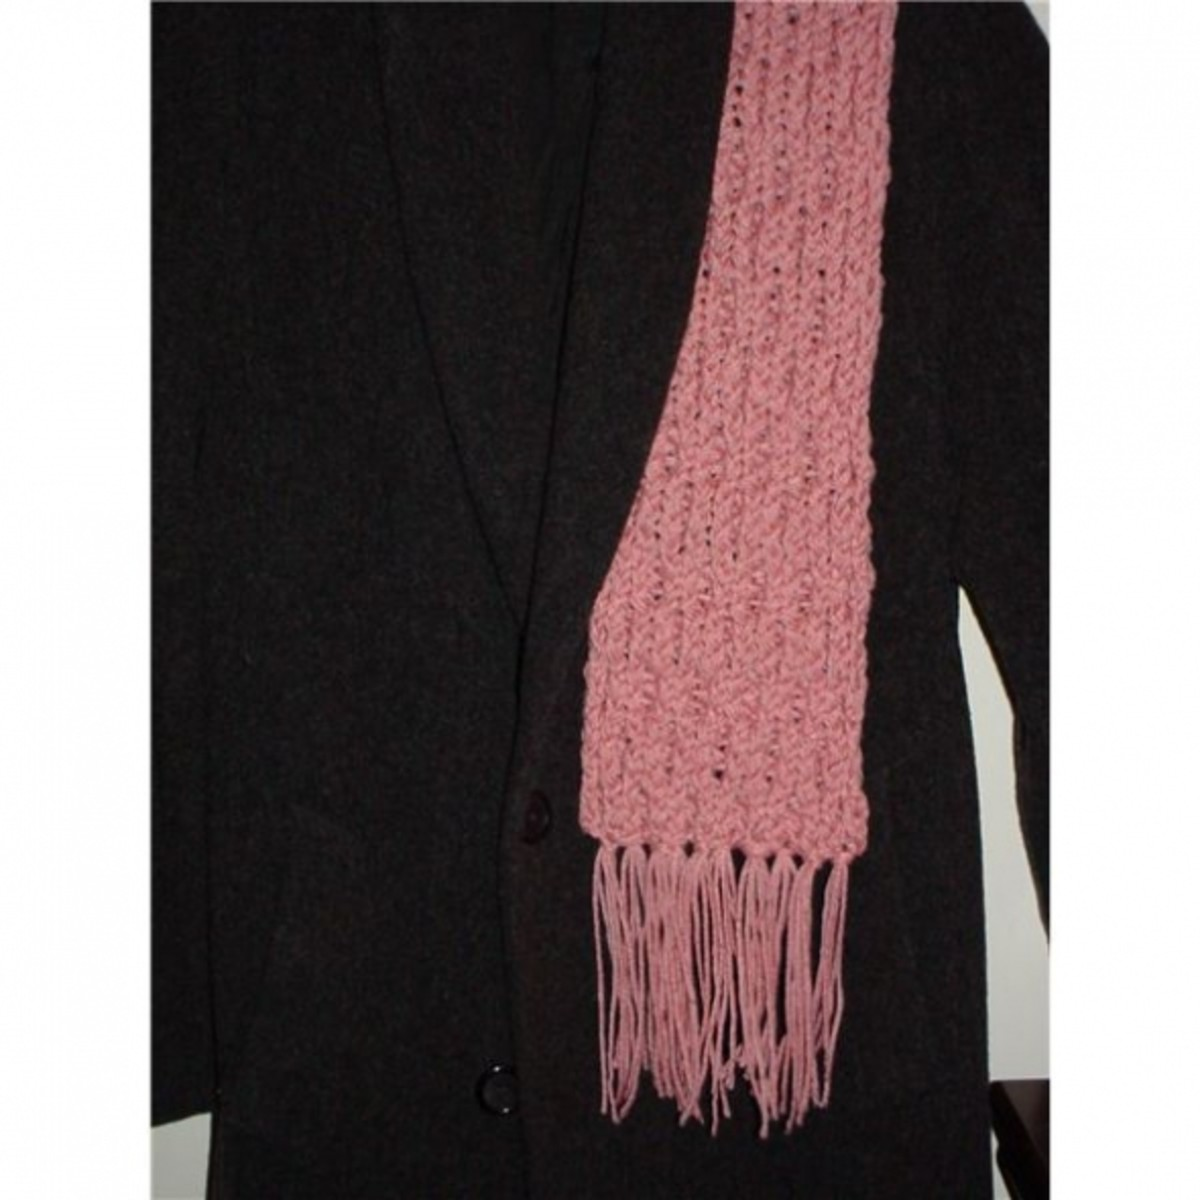 Pink honeycomb scarf knitted on the pink Knifty Knitter loom.